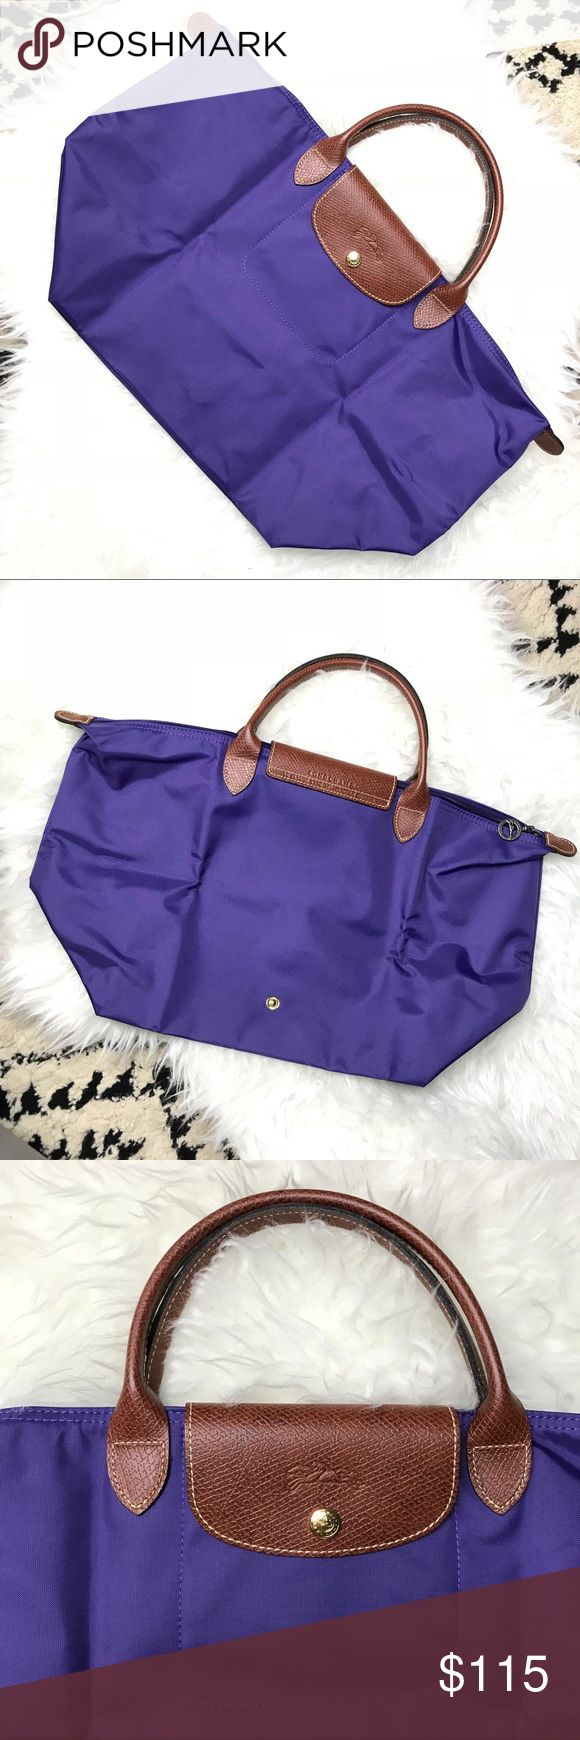 "longchamp • le plige type m short handle tote Size is medium 11.75"" X 11"" X 7.75"" Short handle Nylon Color is Amethyst Brand new with Longchamp sealed care card Official product from Longchamp store Will come with the receipt Selling as it's not my style, given to me as a gift Longchamp Bags Totes"